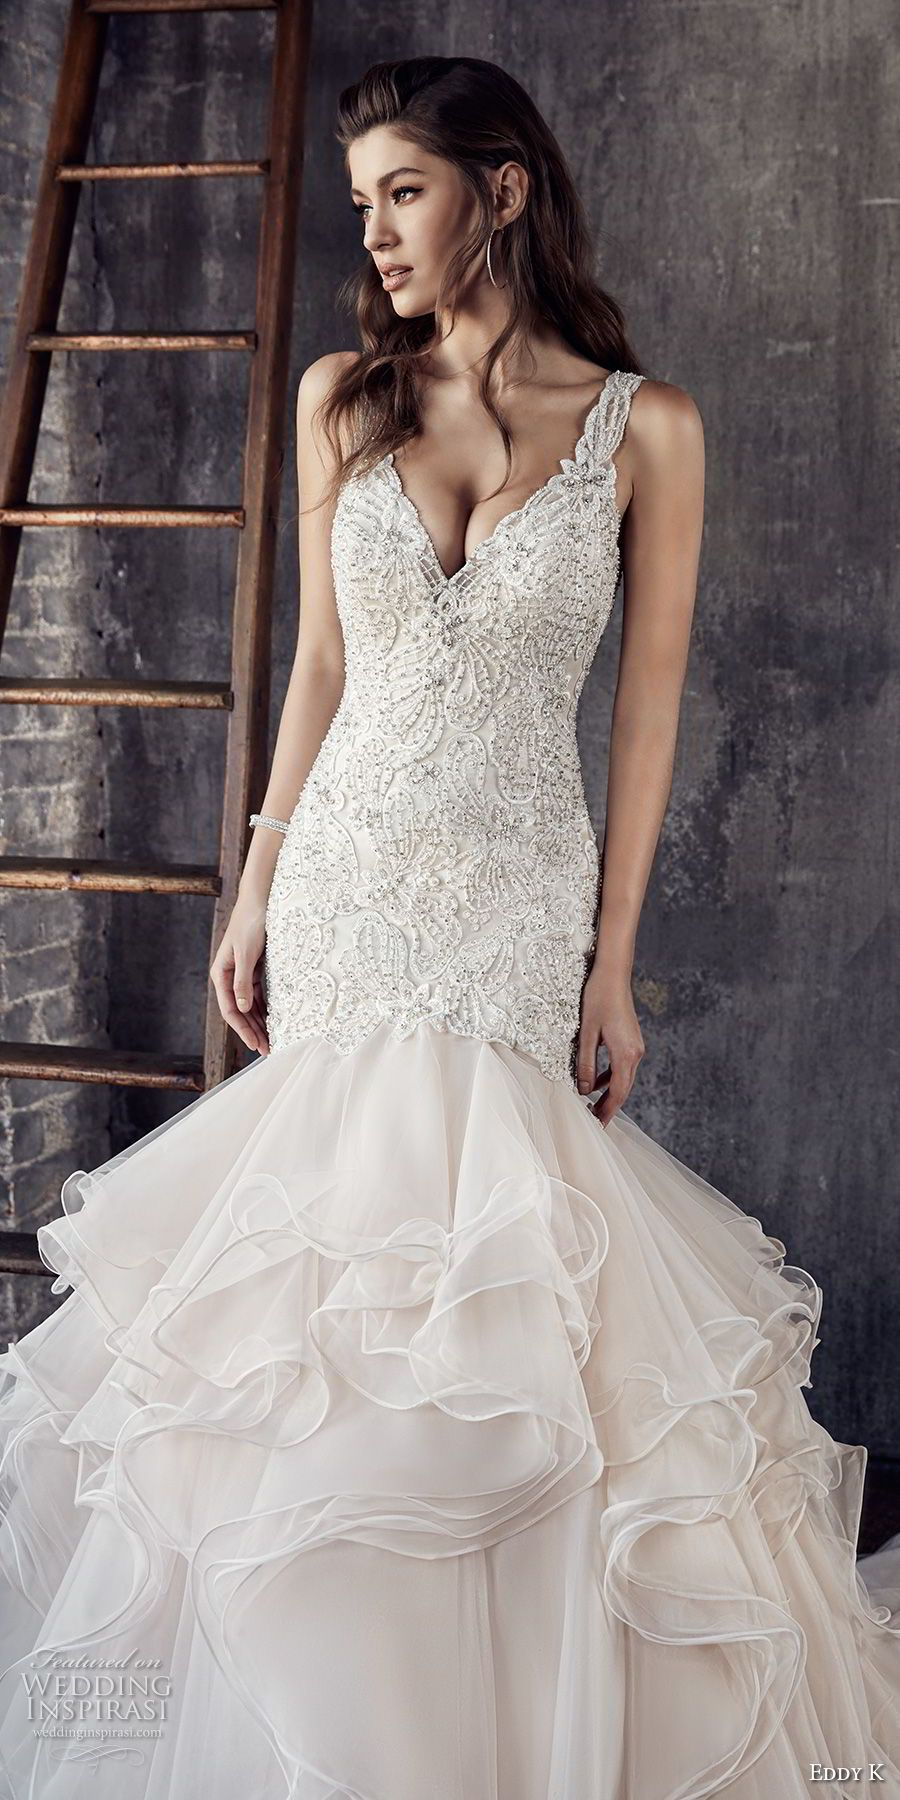 Eddy k couture wedding dresses mermaid wedding dresses